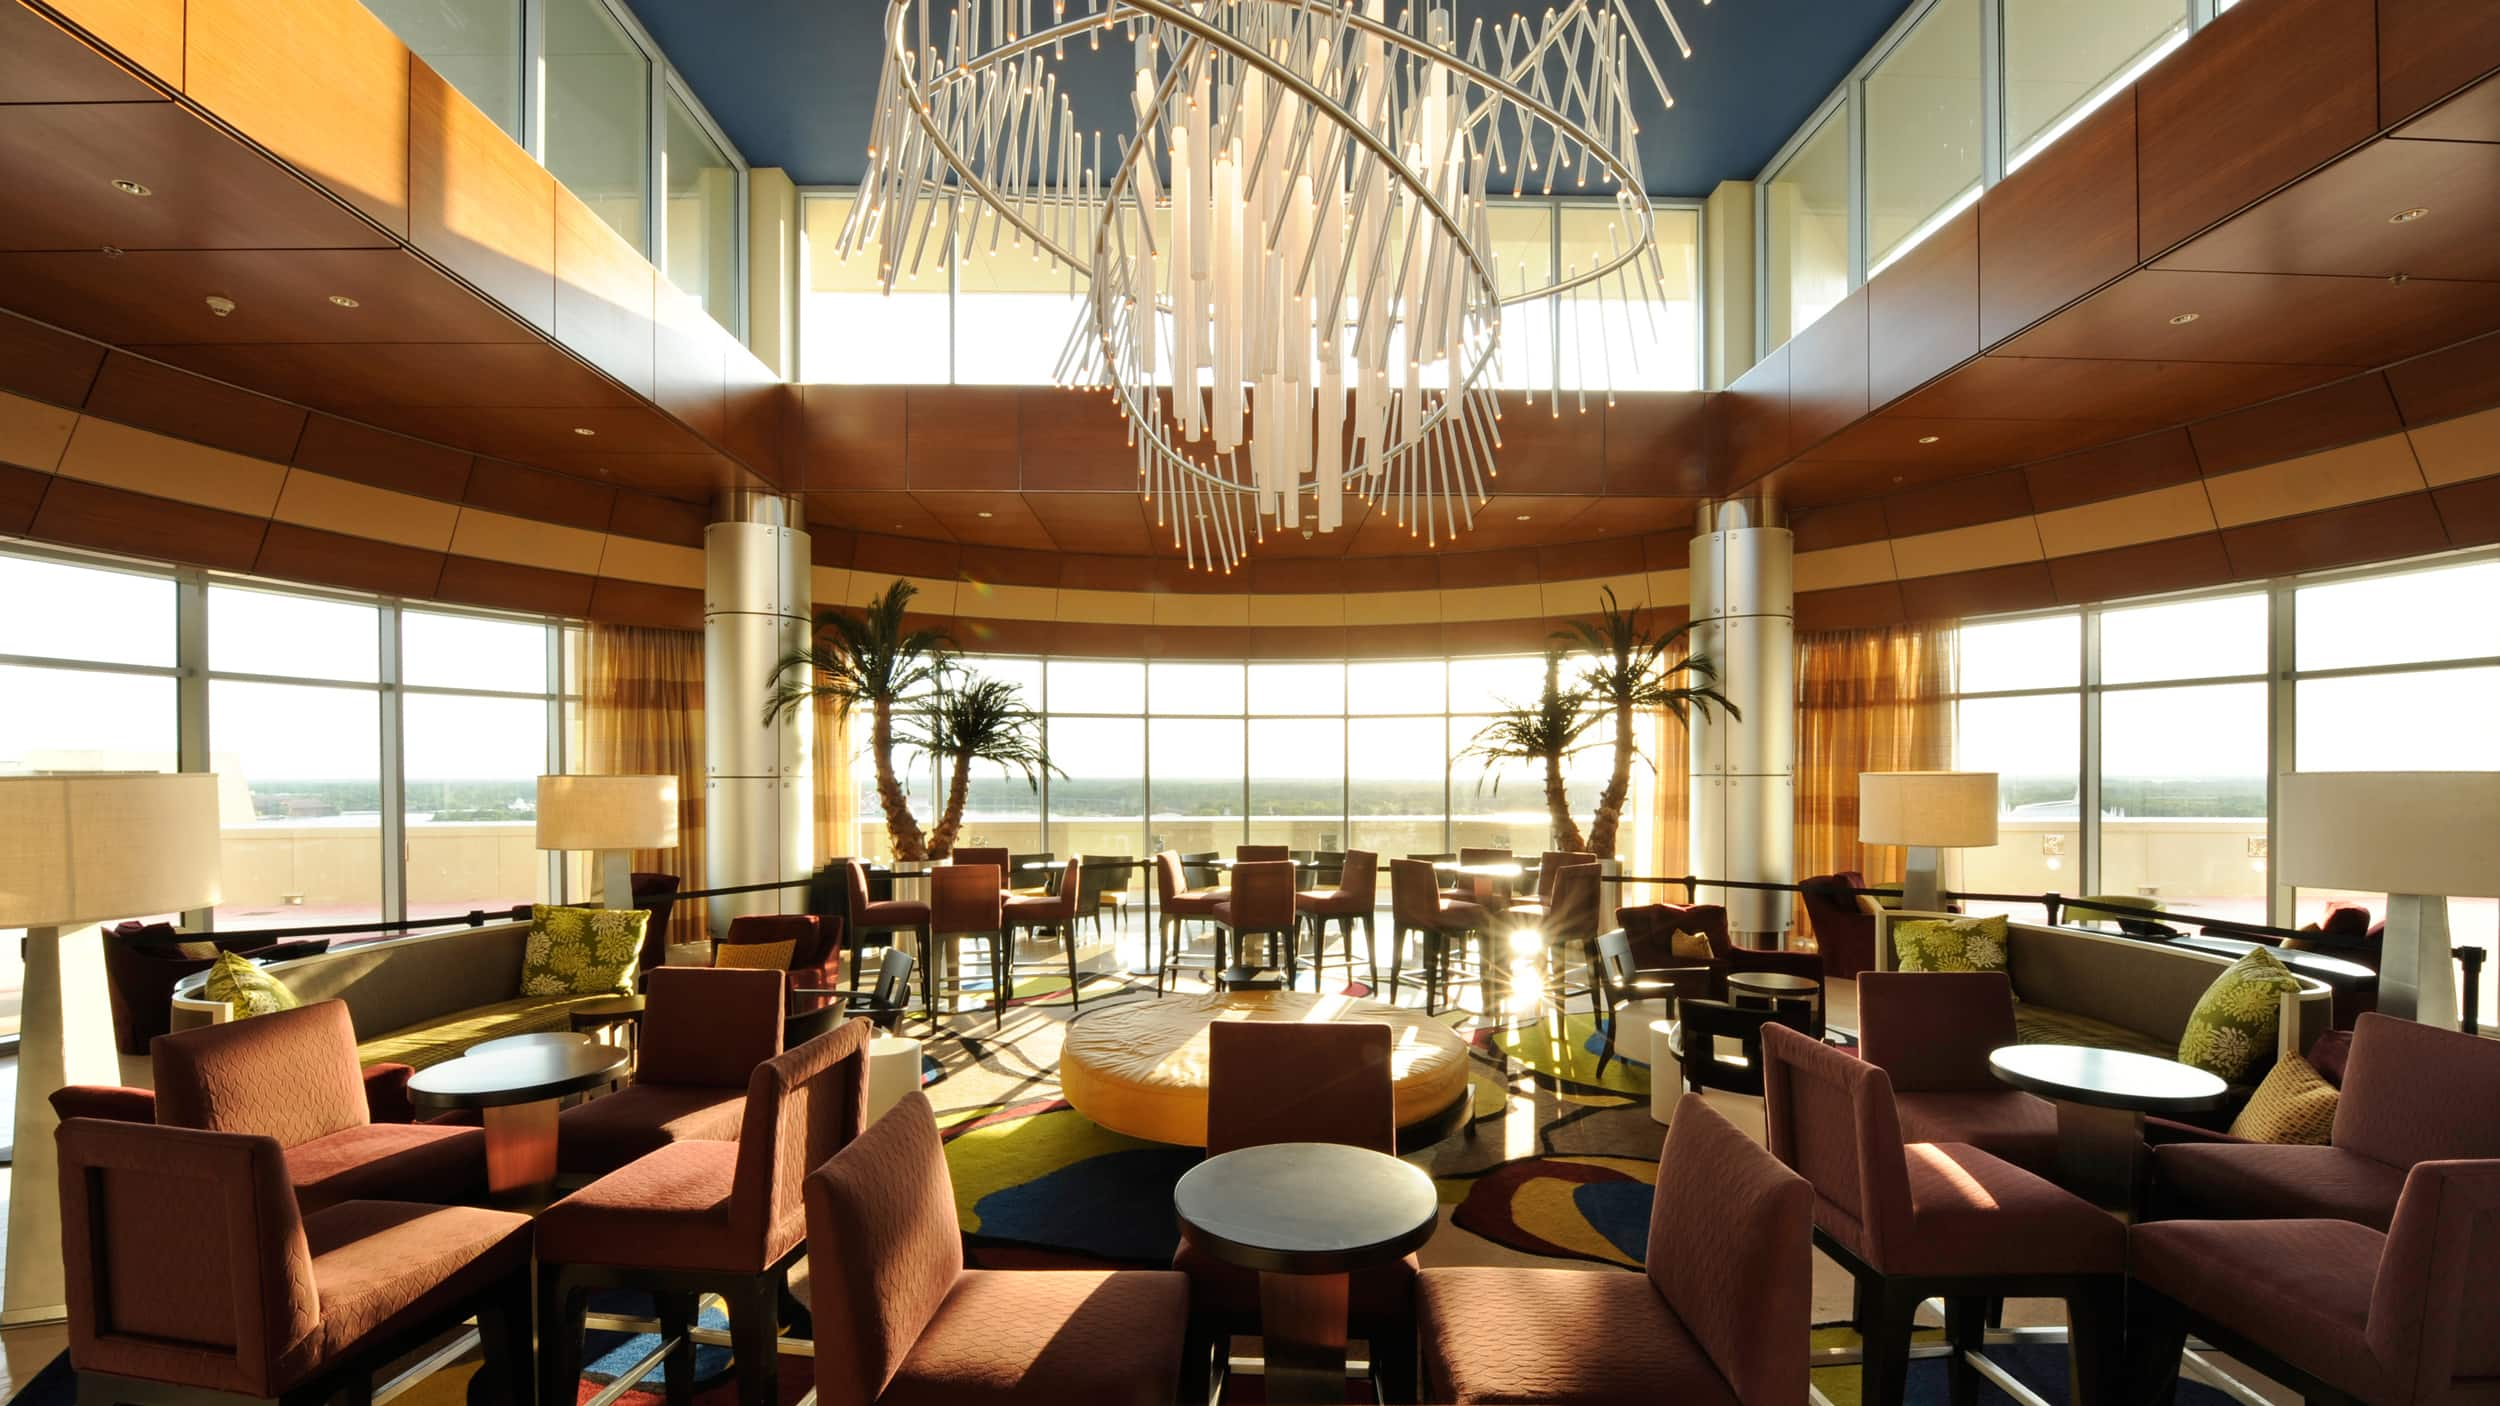 The interior of Top of the World Lounge